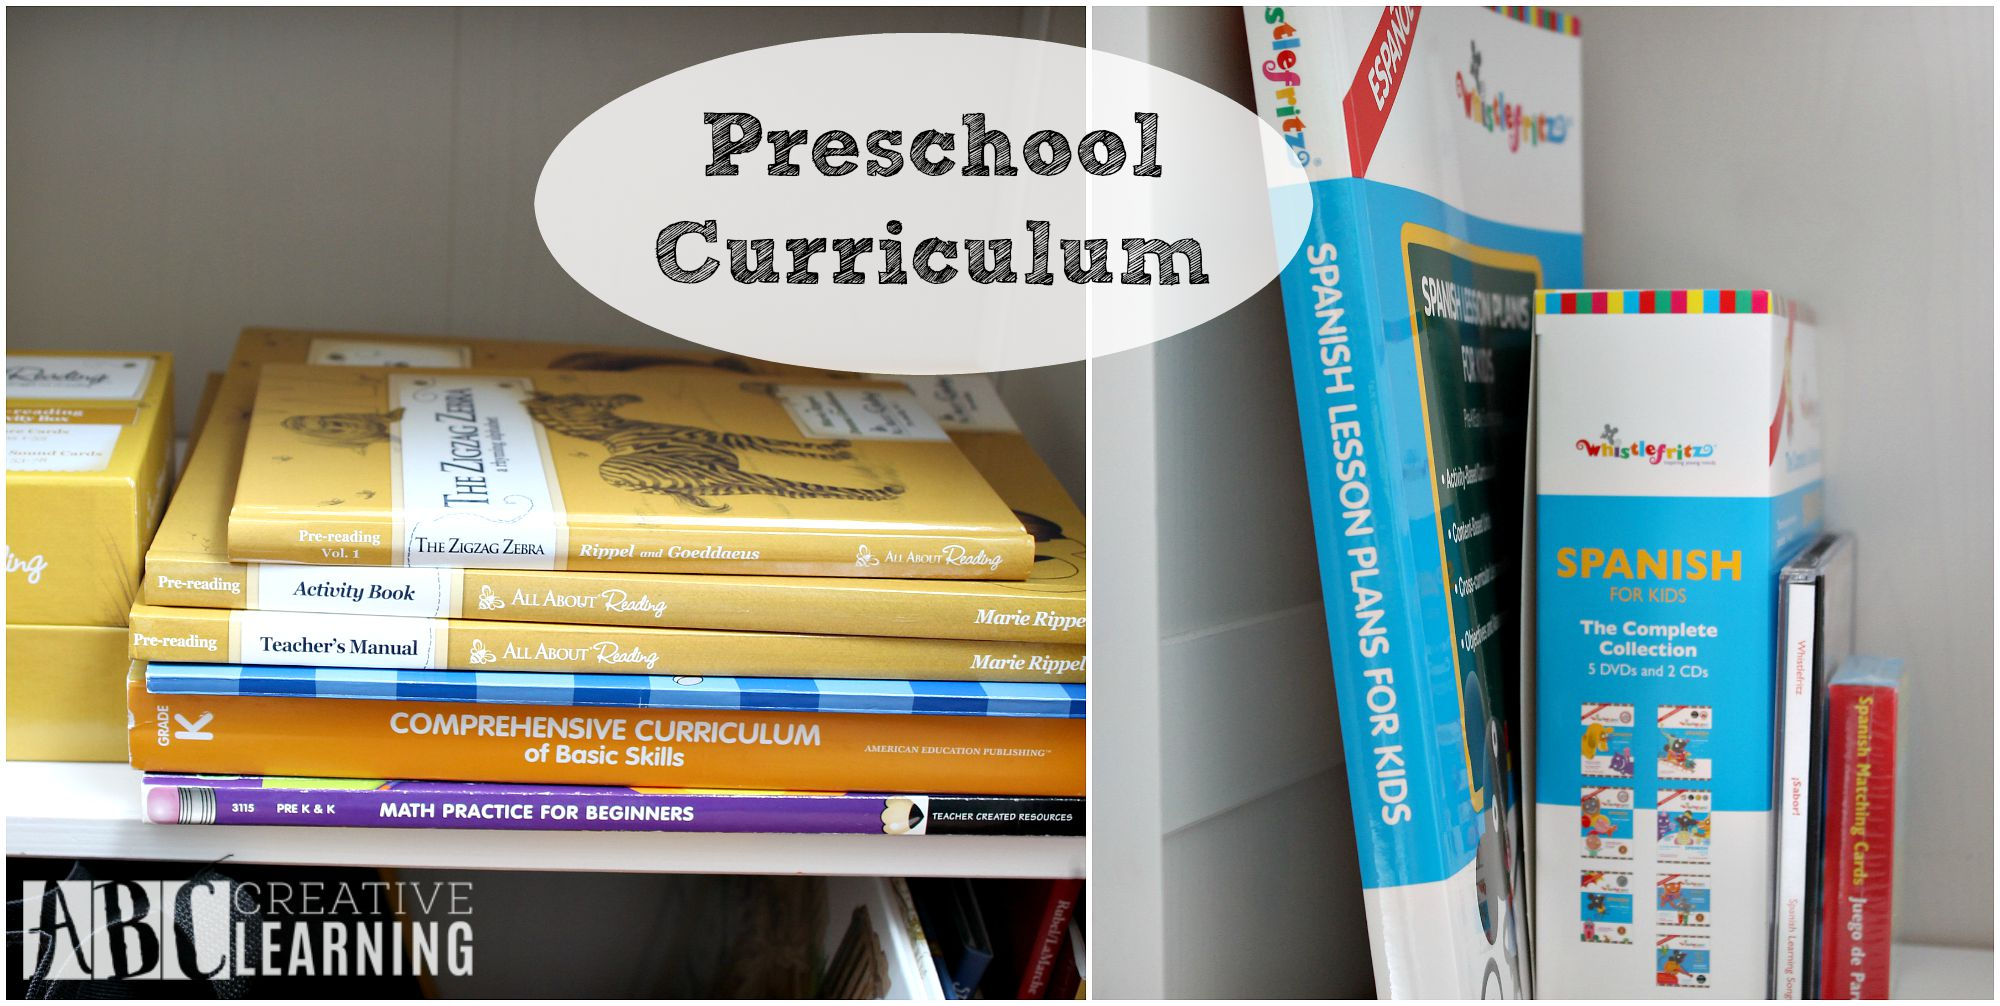 Our Curriculum 2015-2016 Preschool